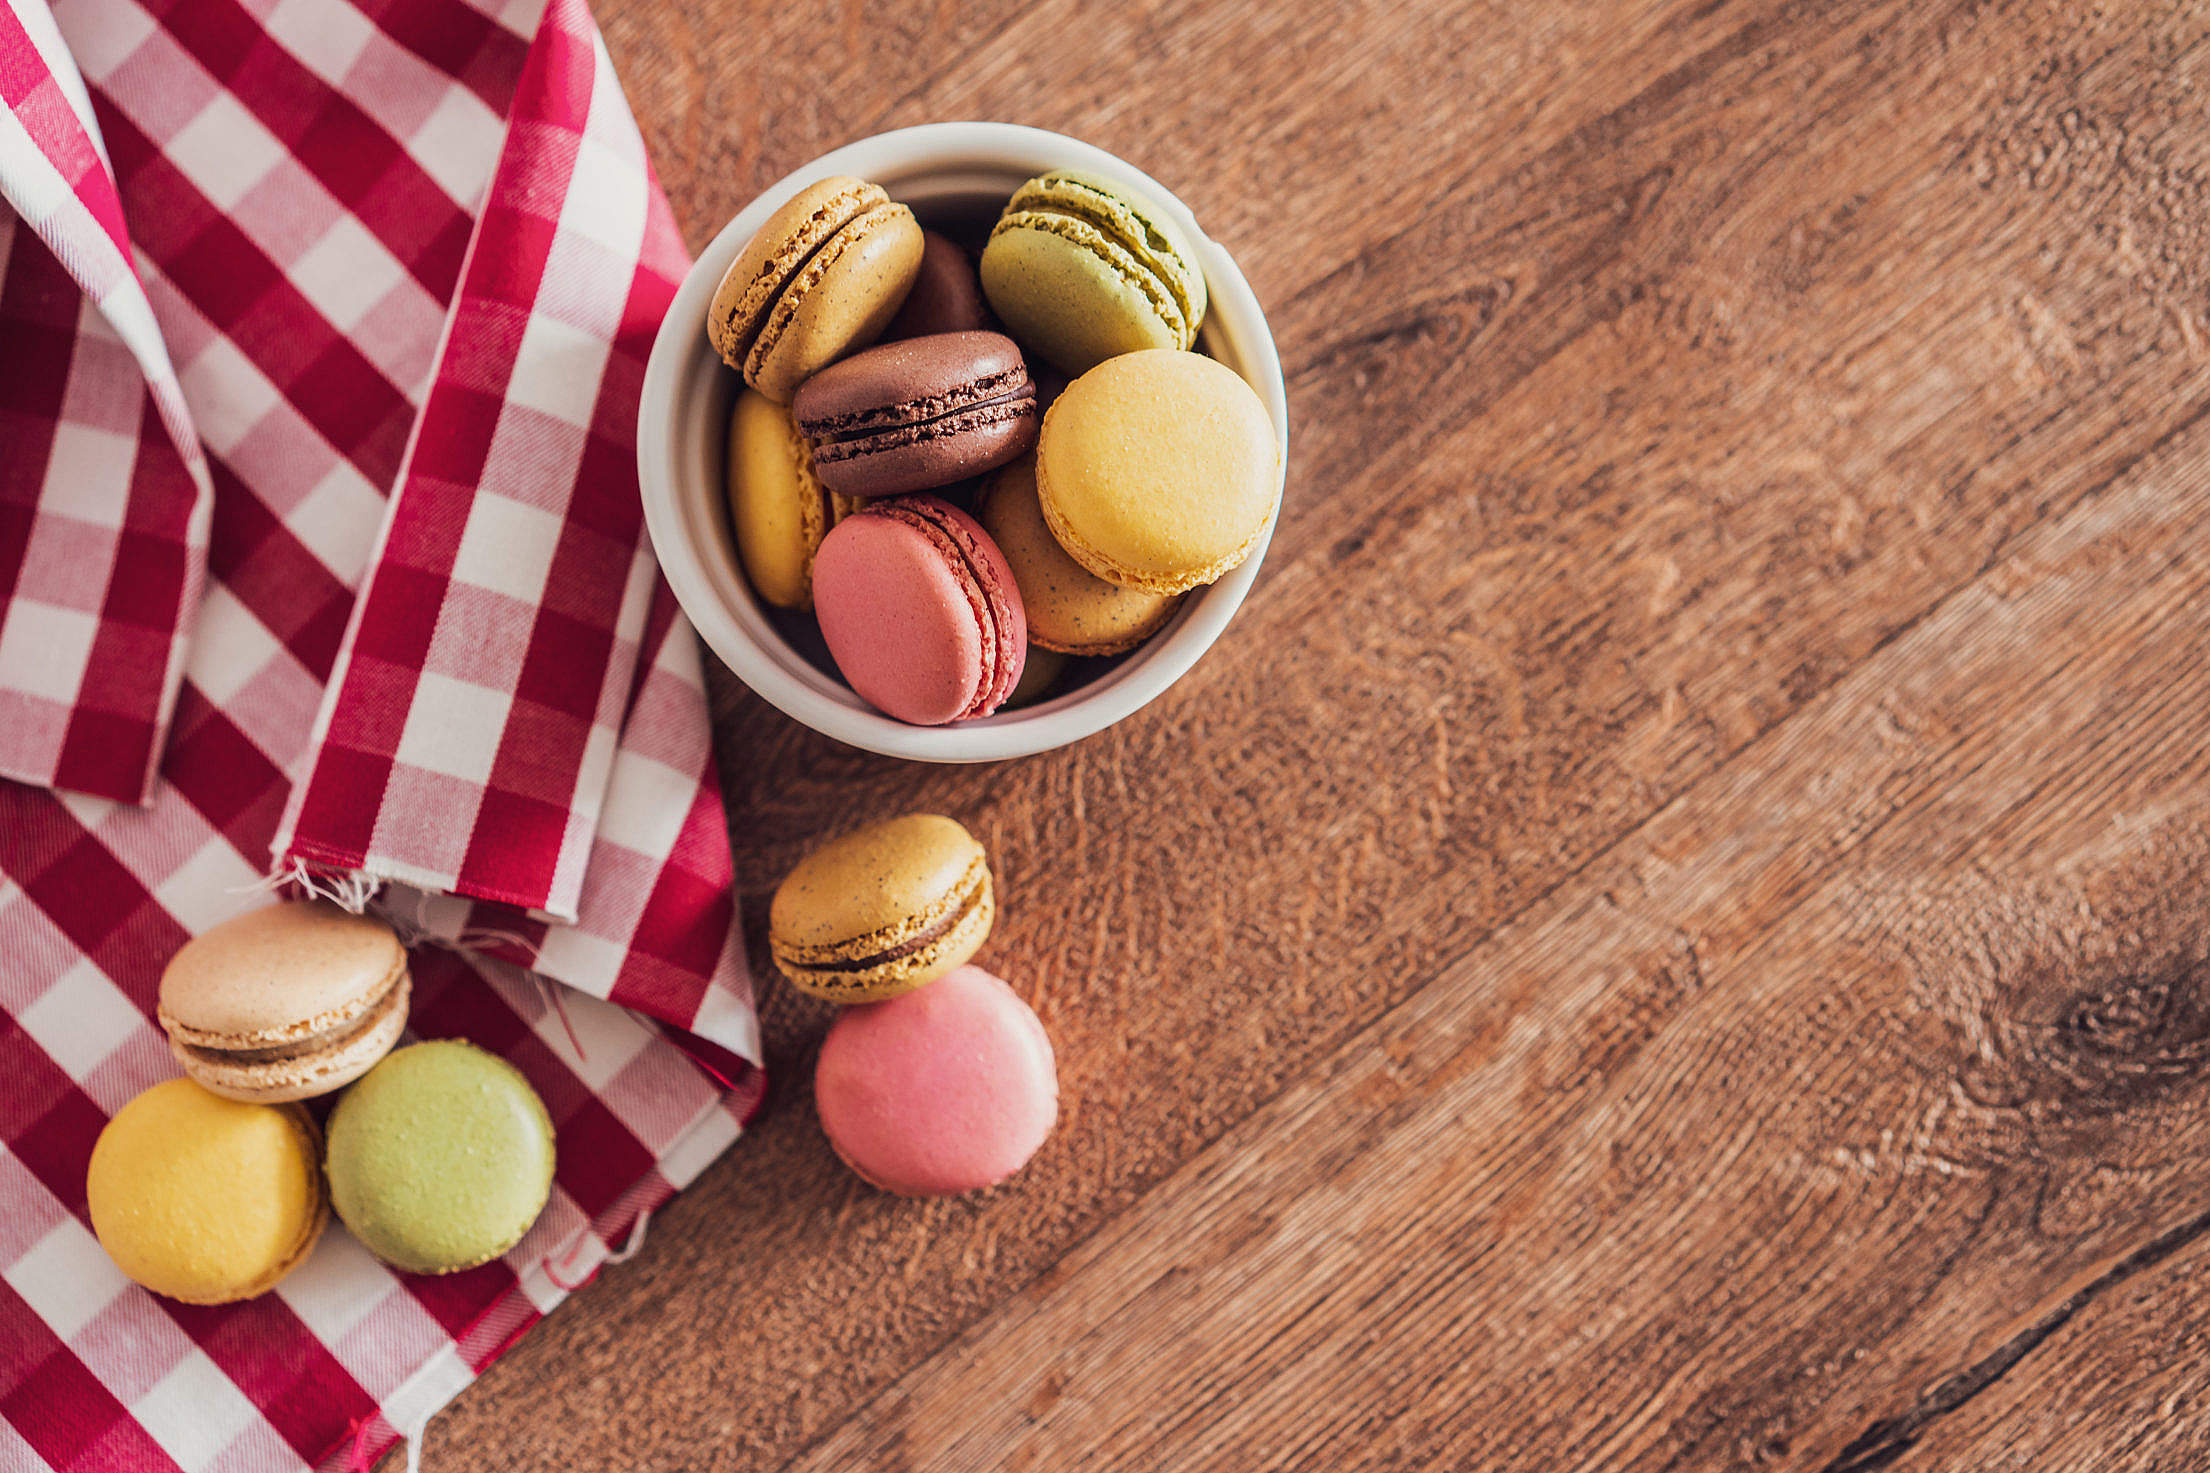 Yummy Colorful Macarons on Wooden Table Free Stock Photo